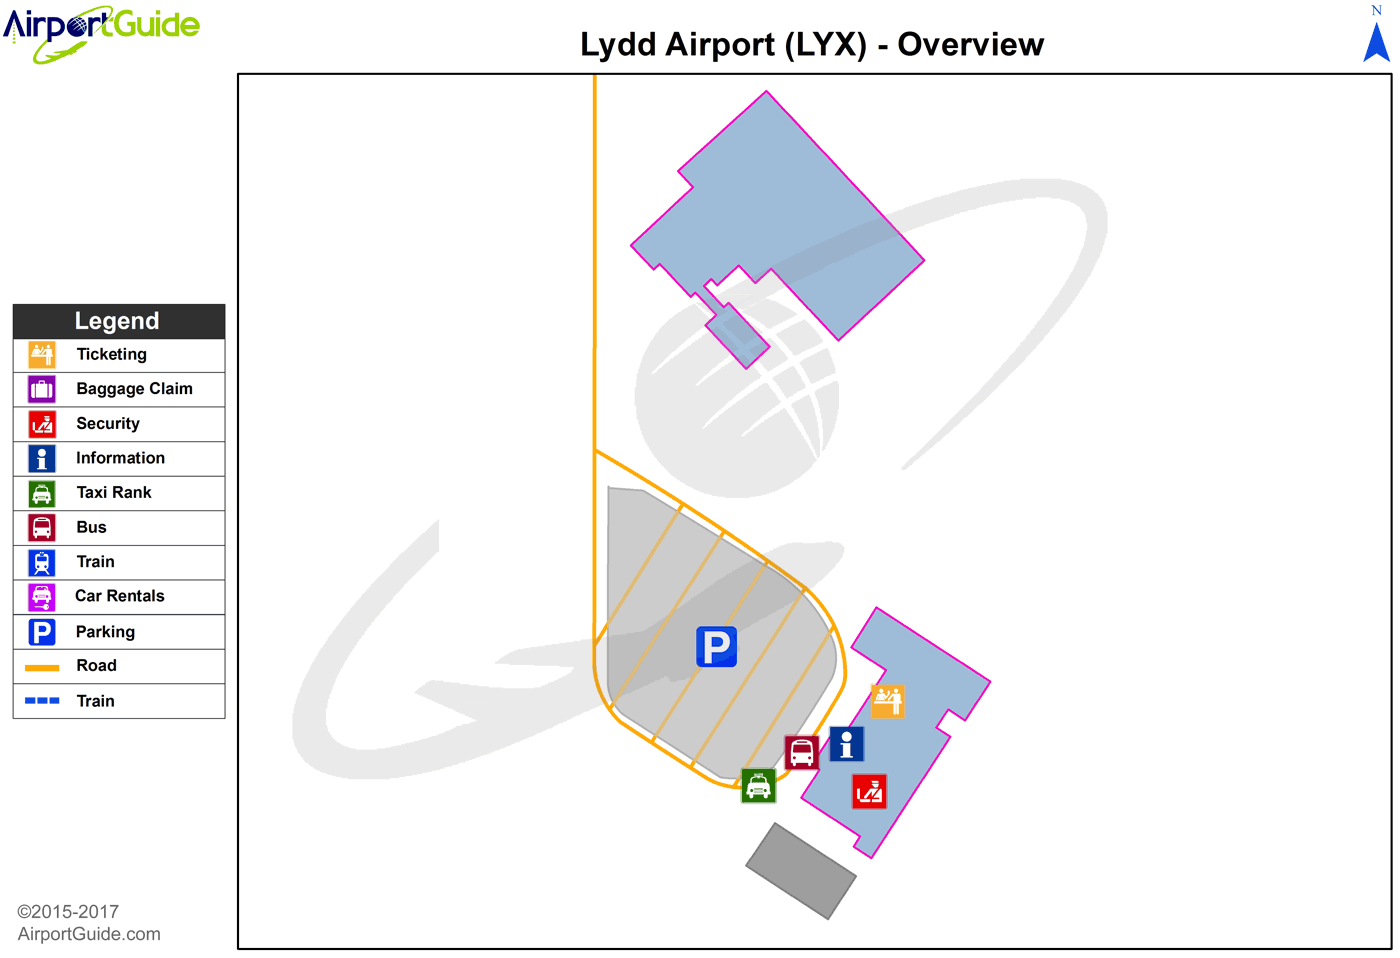 Lydd - Lydd (LYX) Airport Terminal Map - Overview